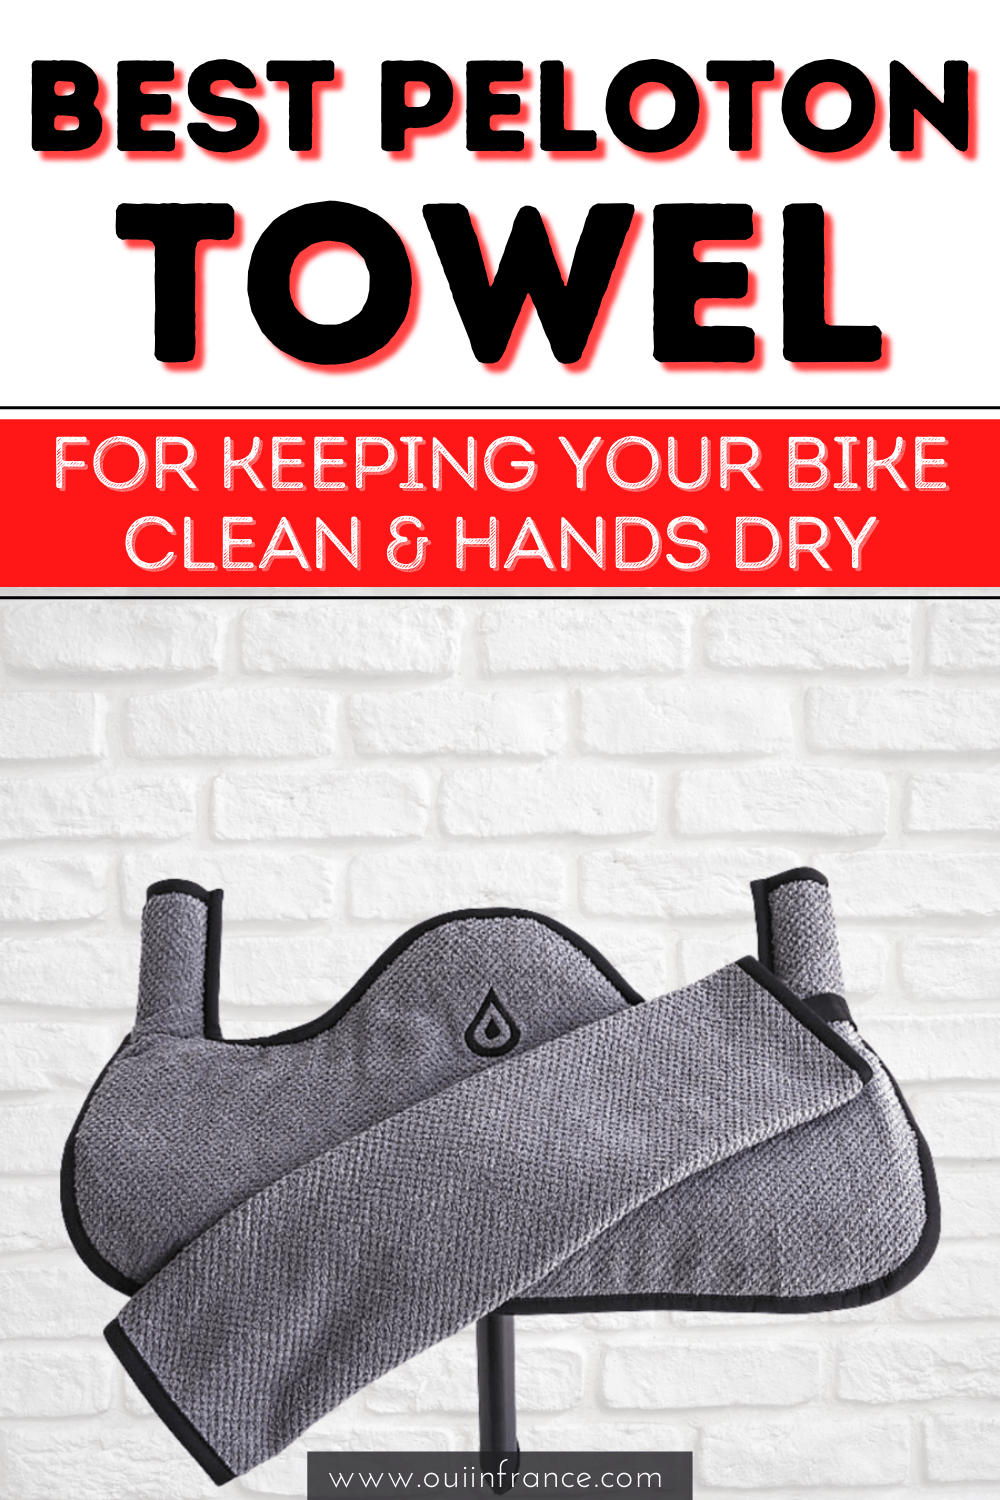 Best Peloton Towel & accessories